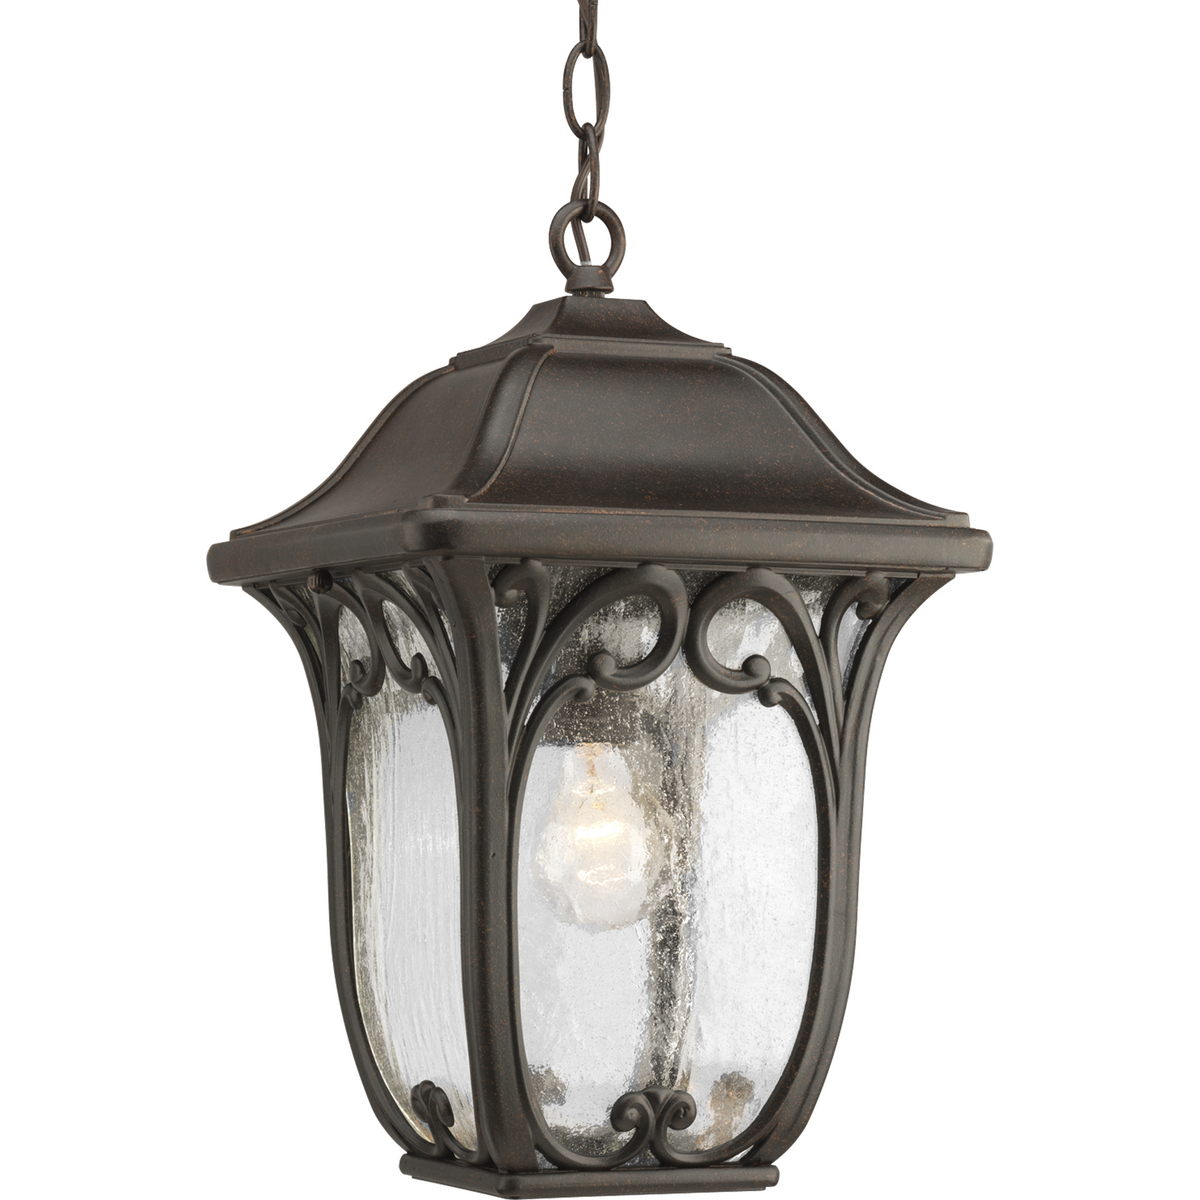 PRO P6501-84 One Light Espresso Etched Glass Hanging Lantern 1X100Medium